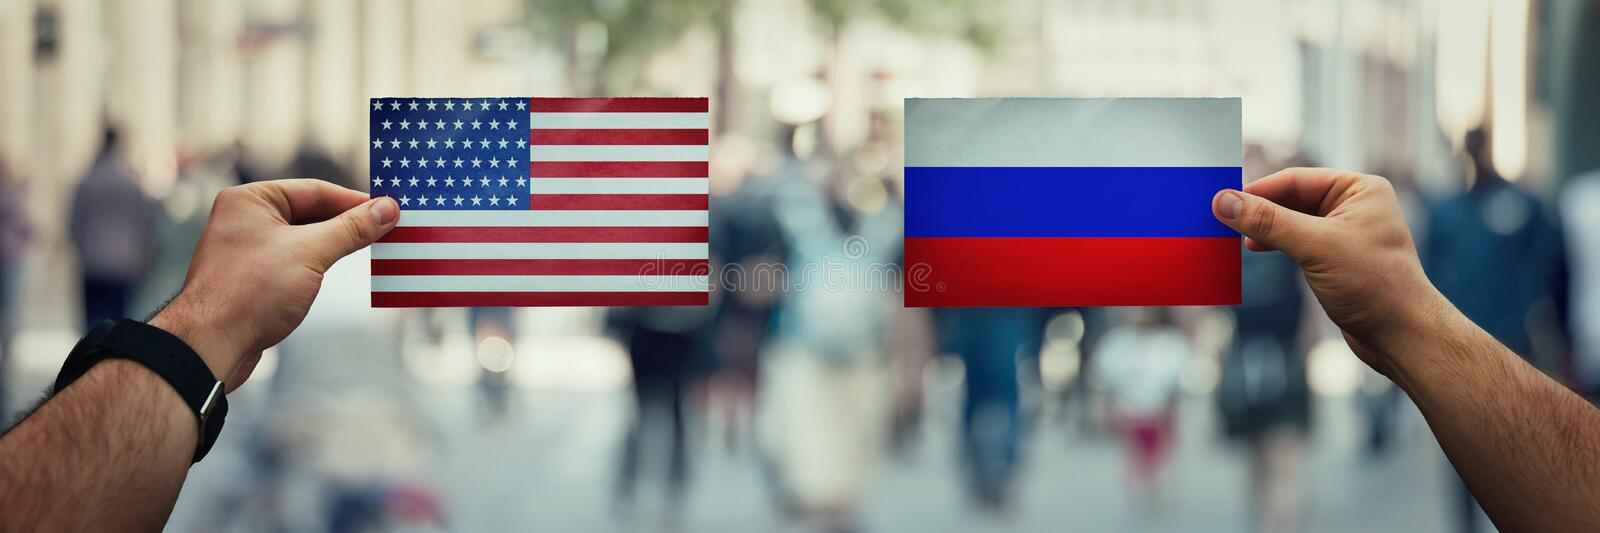 Usa vs russia. Two hands holding different flags, Russia vs United States on politics arena over crowded street background. Future strategy, relations between stock photography